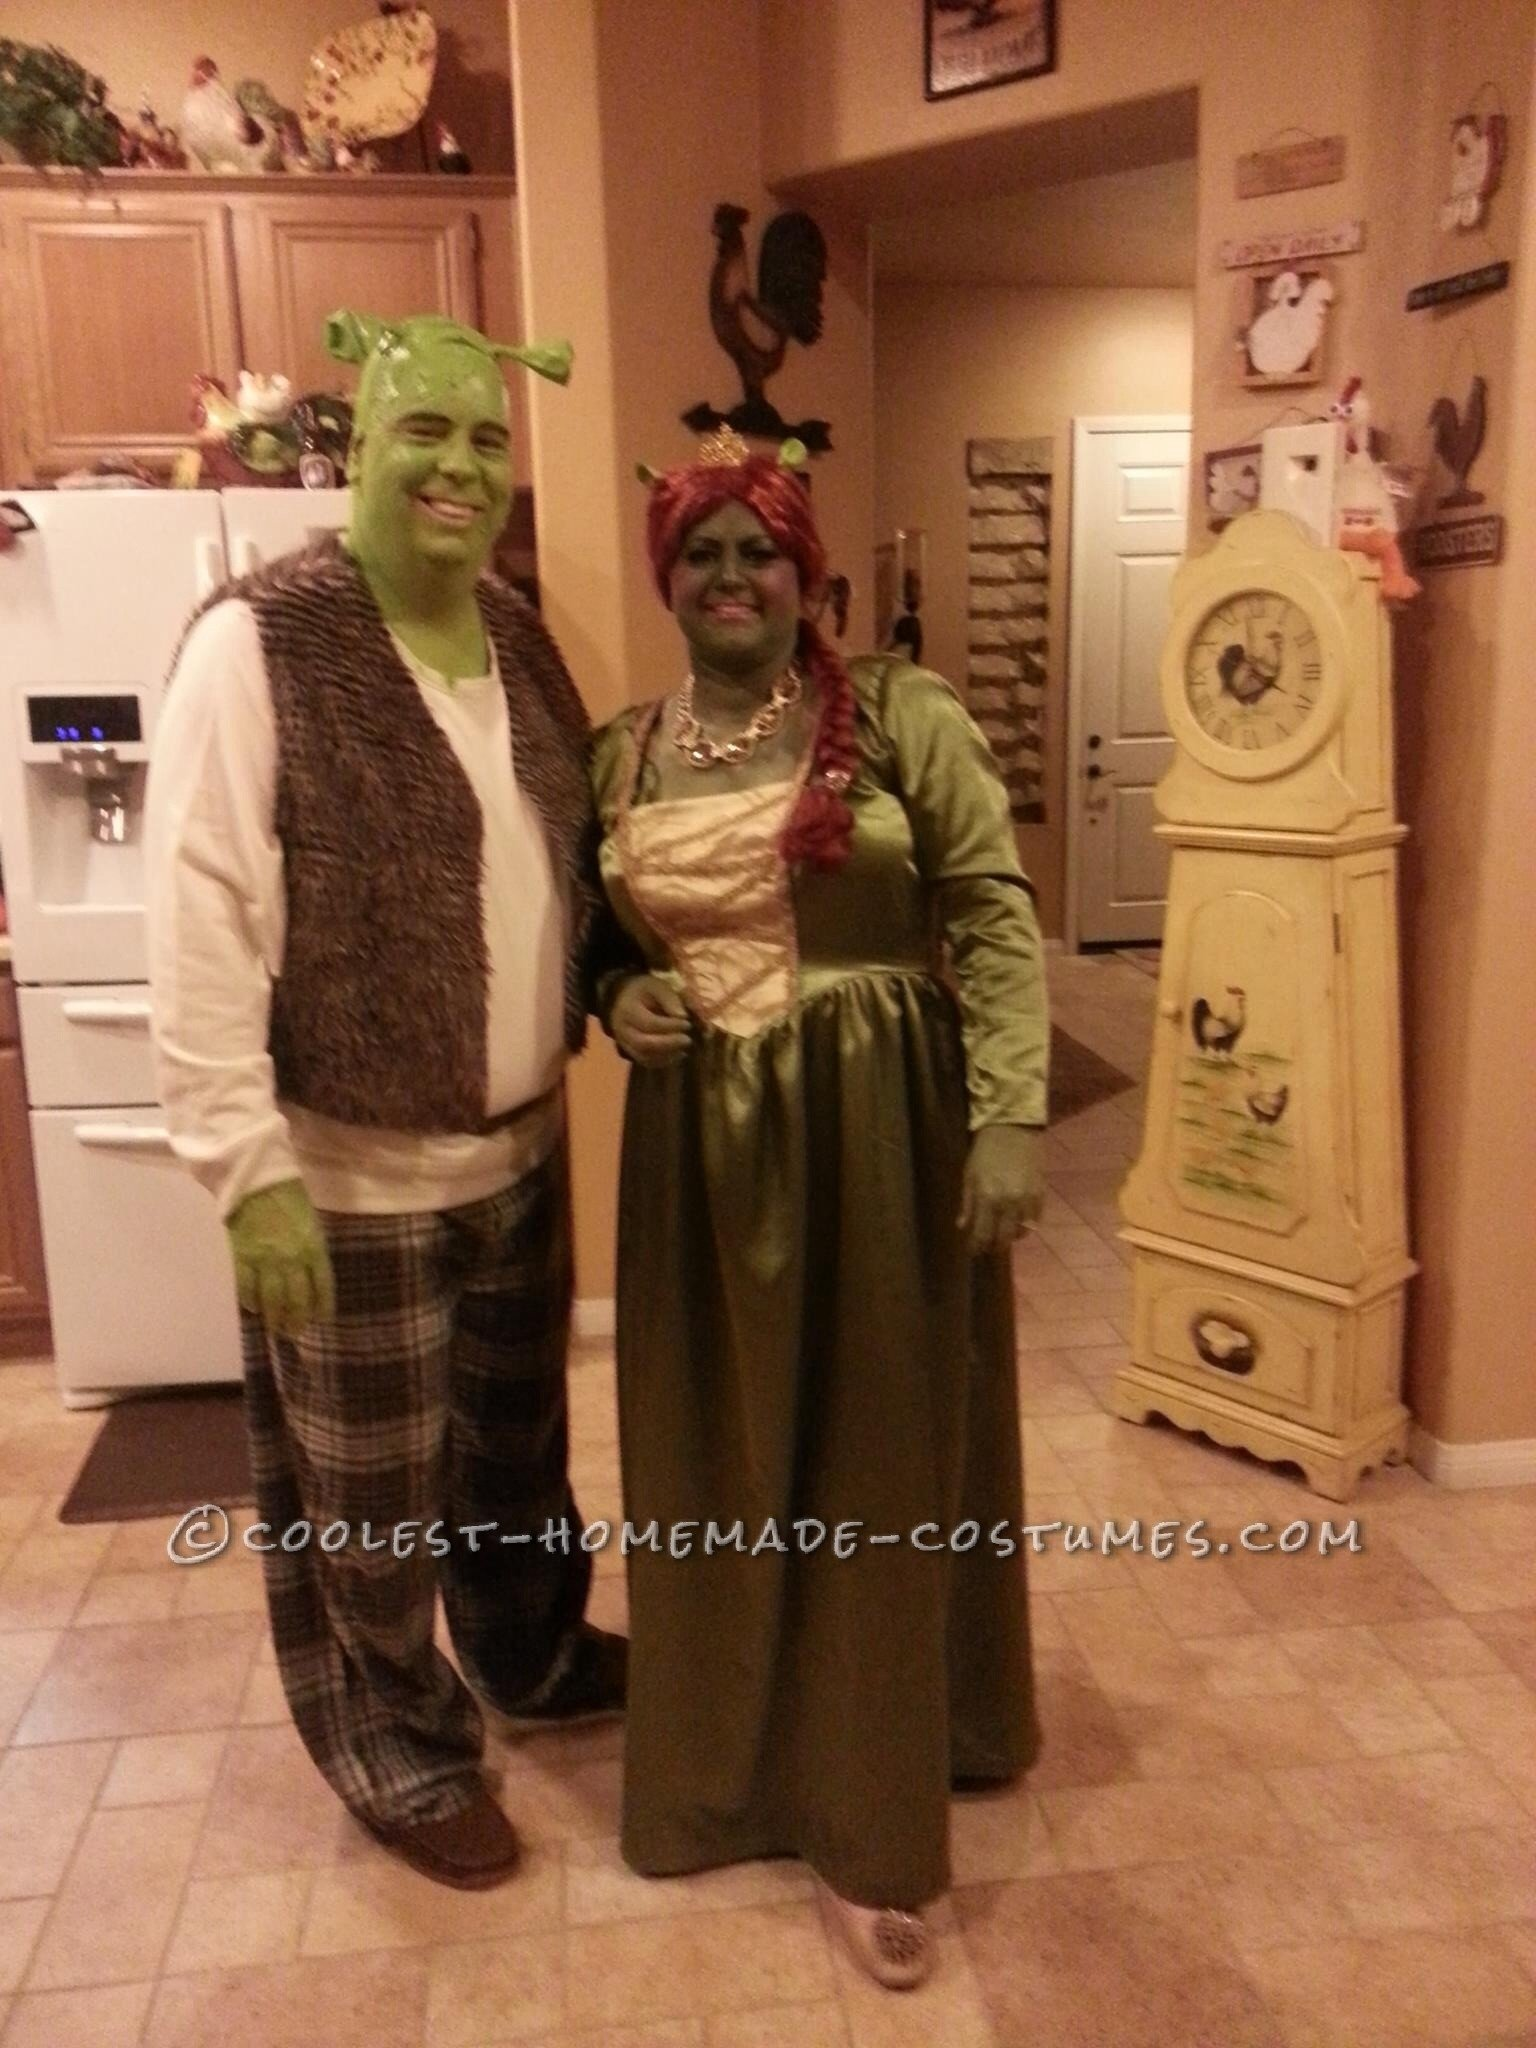 10 Pretty Homemade Plus Size Costume Ideas awesome homemade plus size fiona and shrek costume 2020